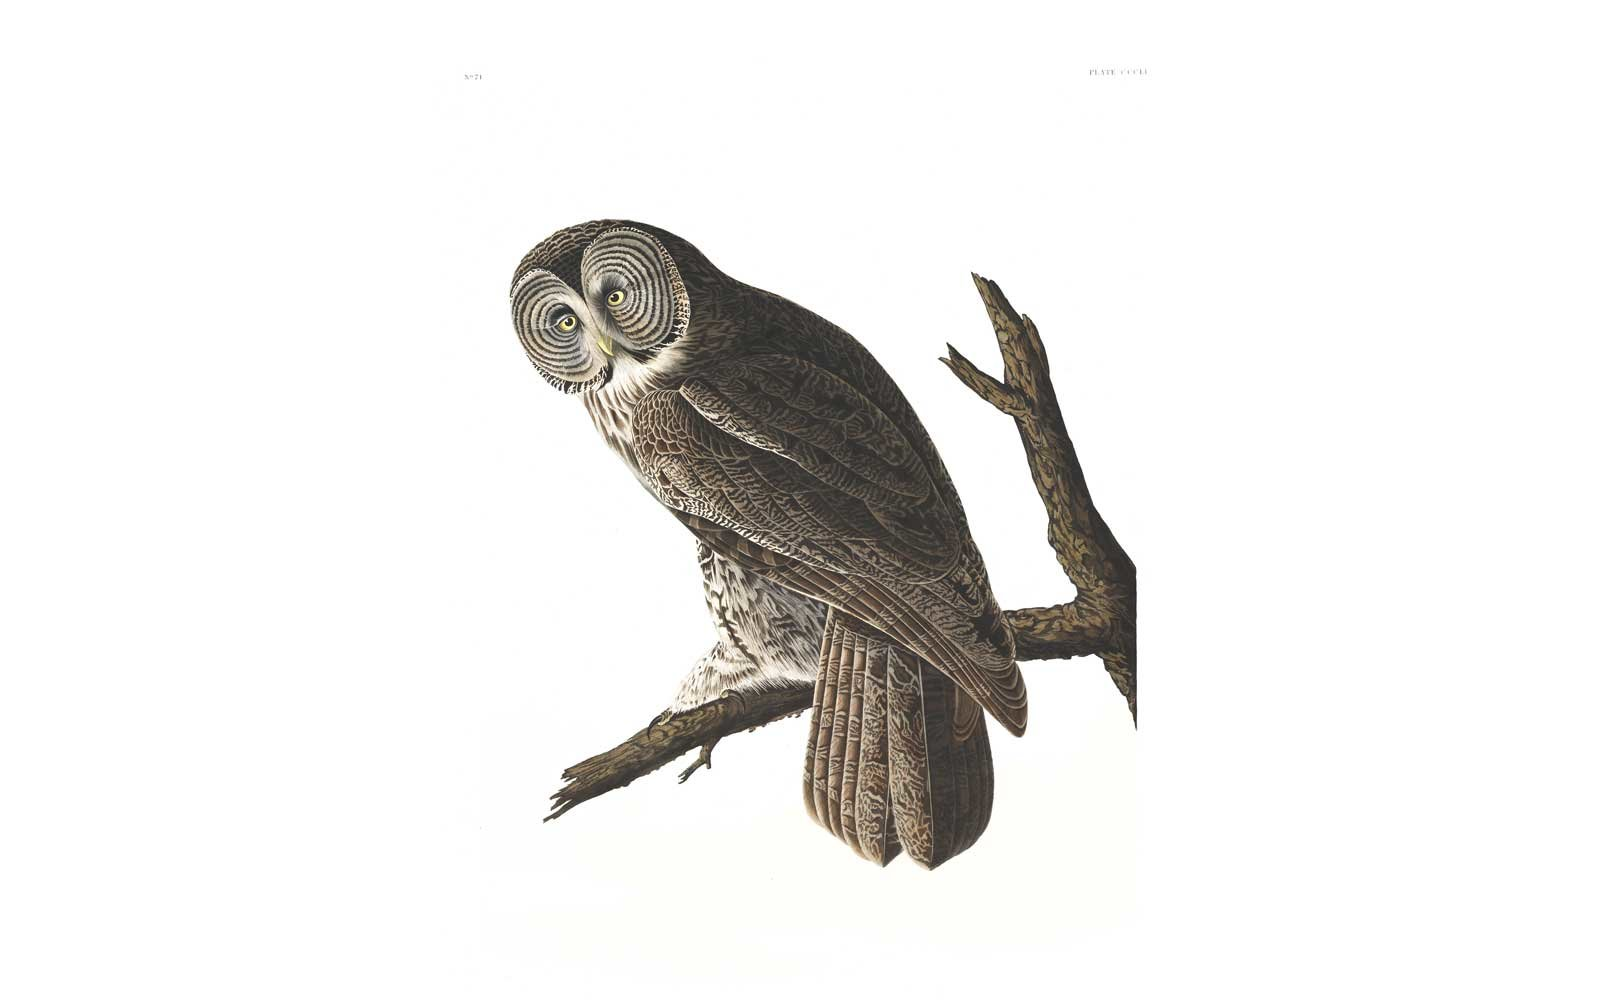 Audubon Birds of America - Great Cinereous Owl